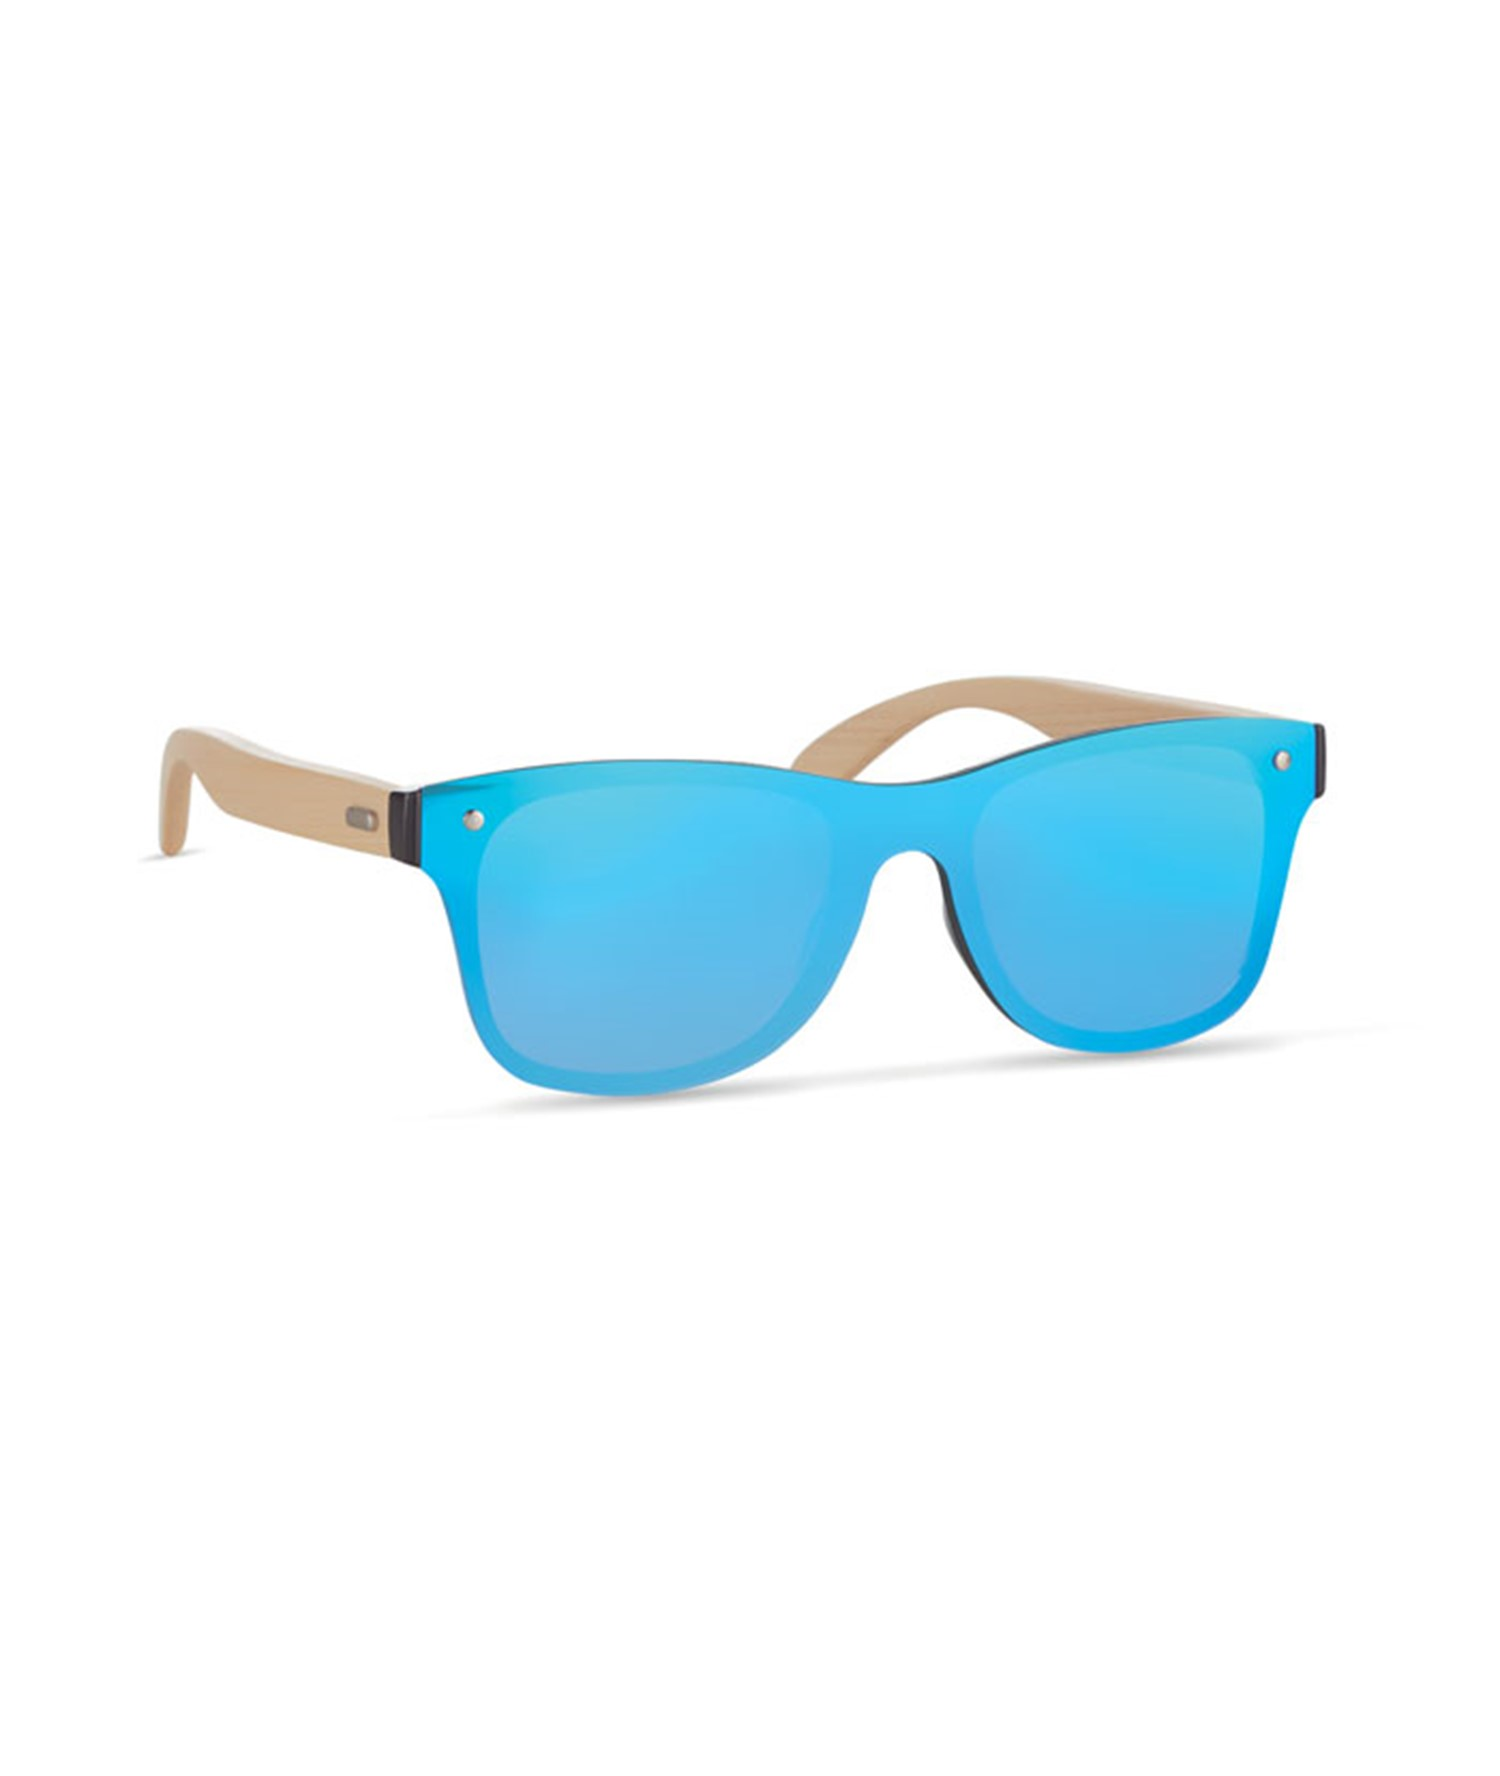 ALOHA - SUNGLASSES WITH MIRRORED LENS